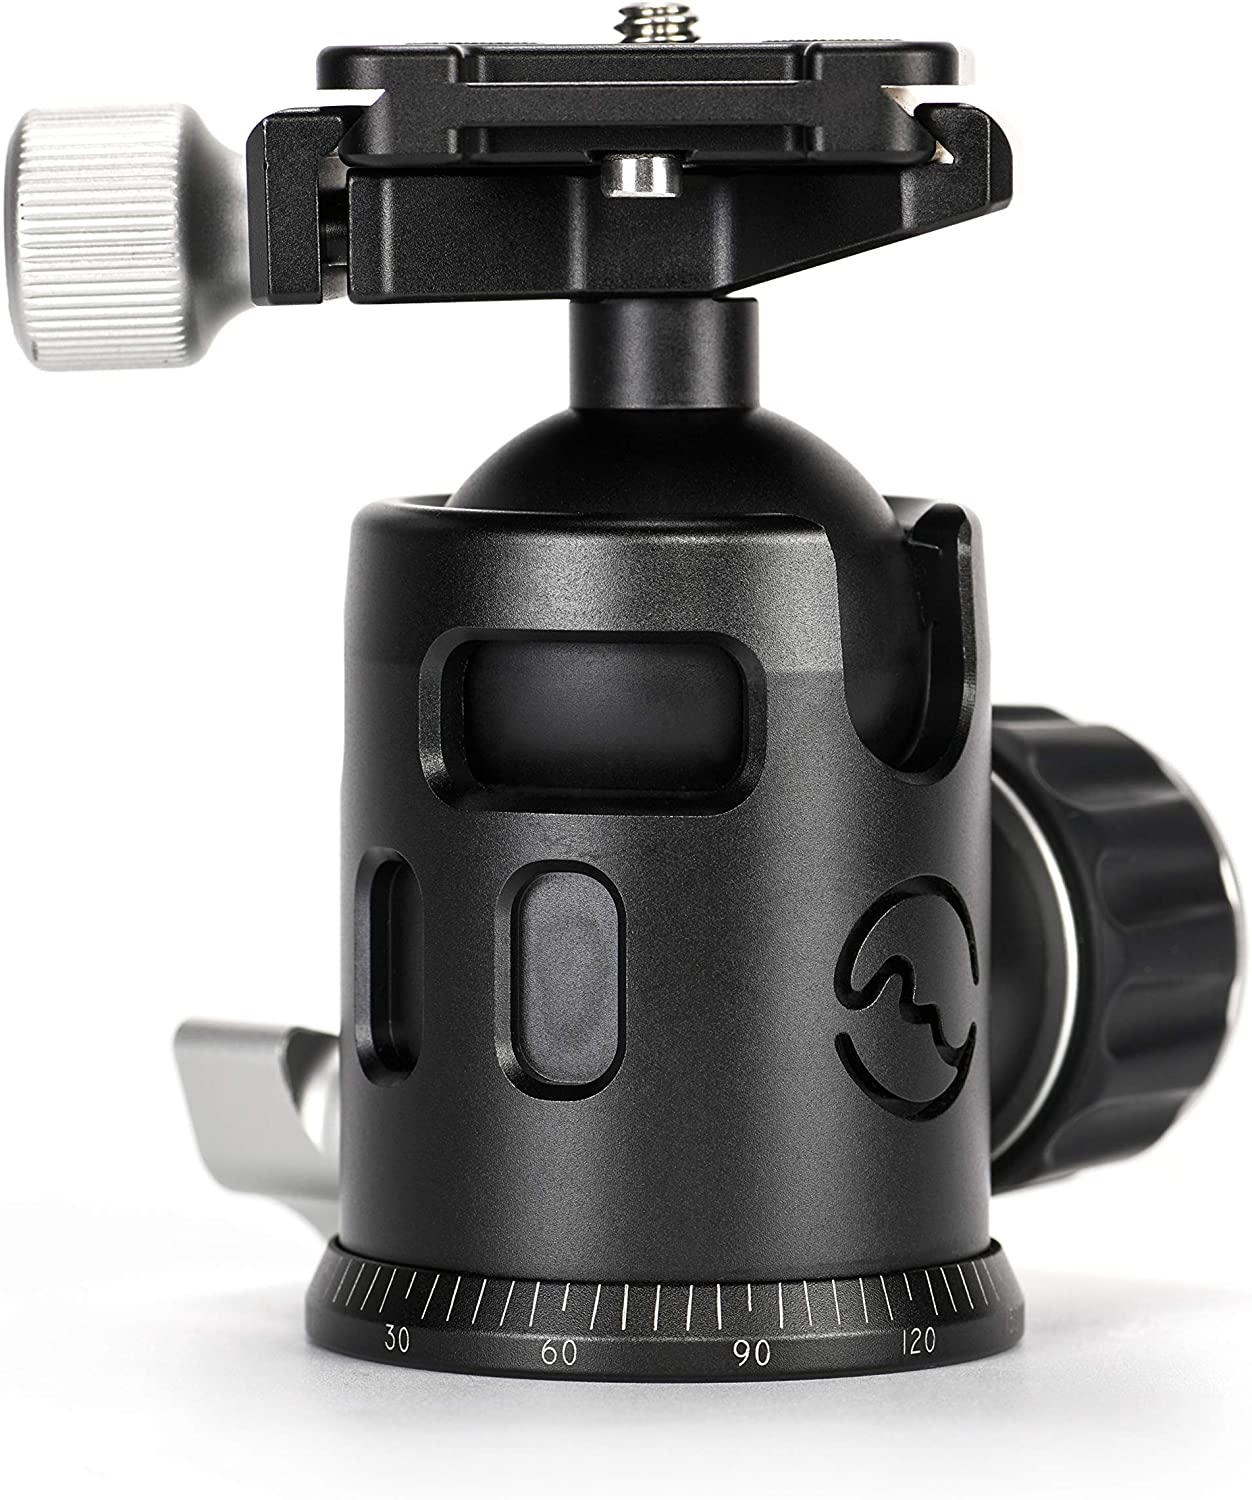 Sunwayfoto EPIC EB-36 Super Light-weight Travel Tripod Ball Head with QR Plate Arca/RRS Compatible